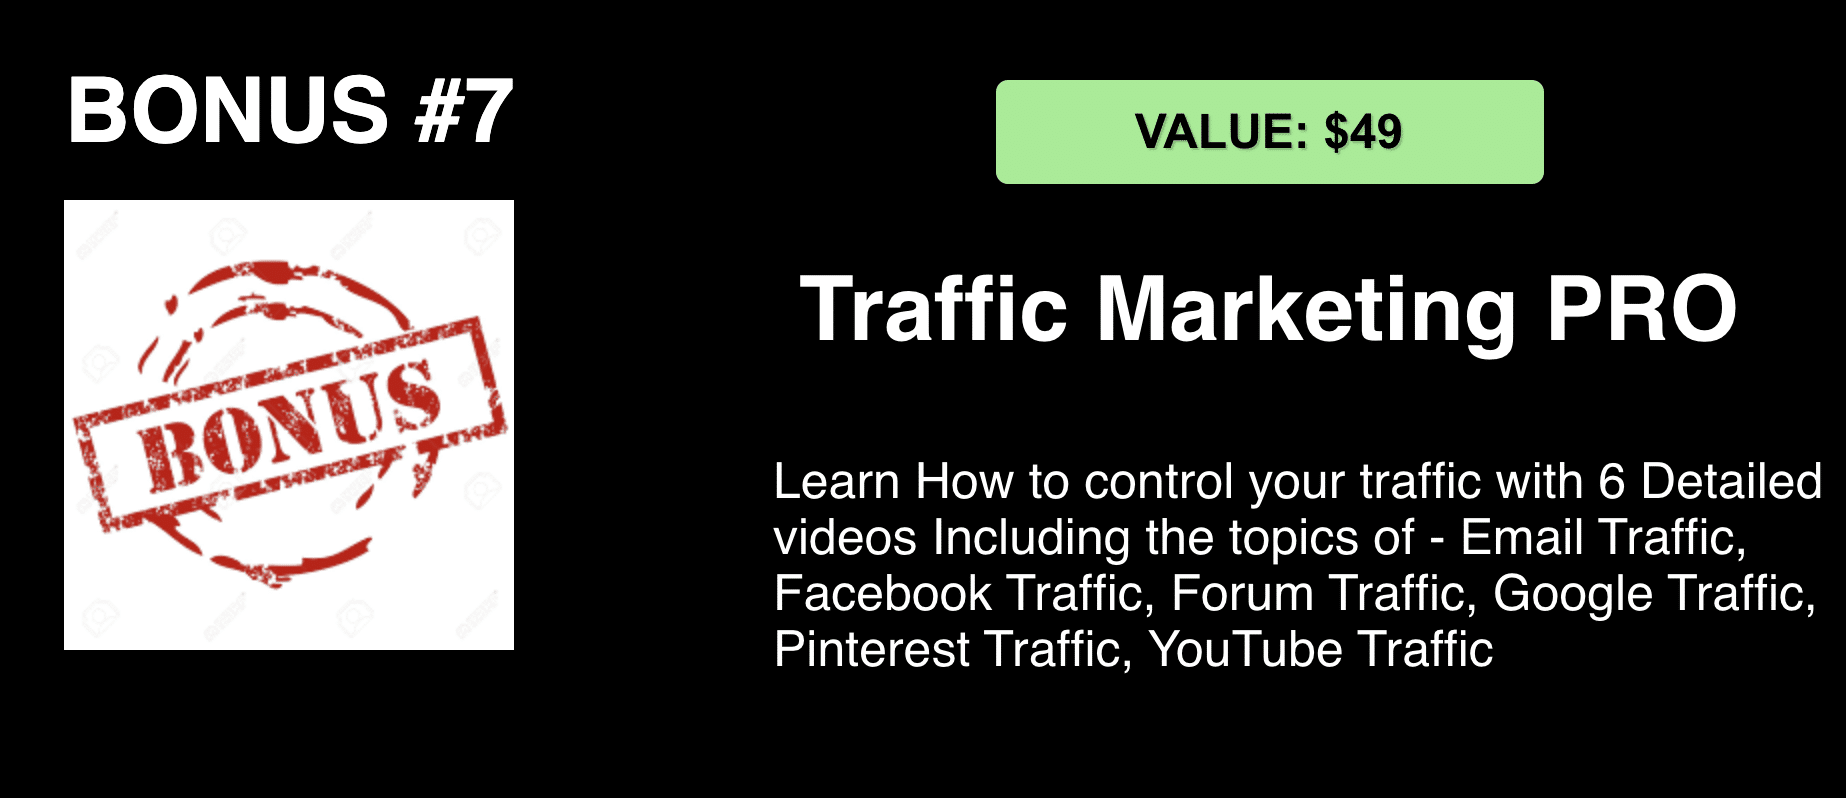 How to Get Free Traffic and Rank Your Website's Blog Posts on Page #1 of Google | Viraltek 12